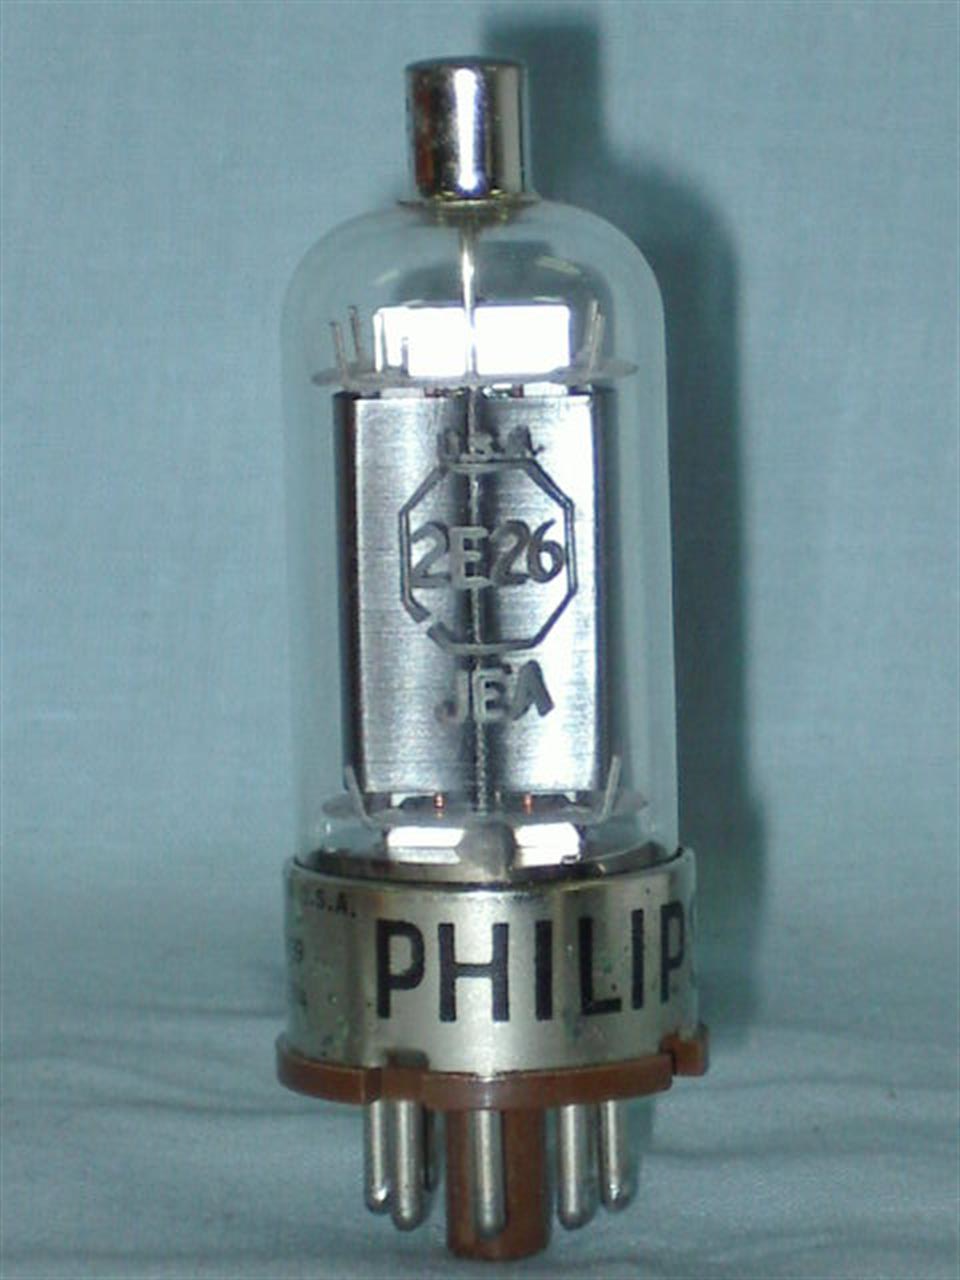 Válvula 2E26 Philips